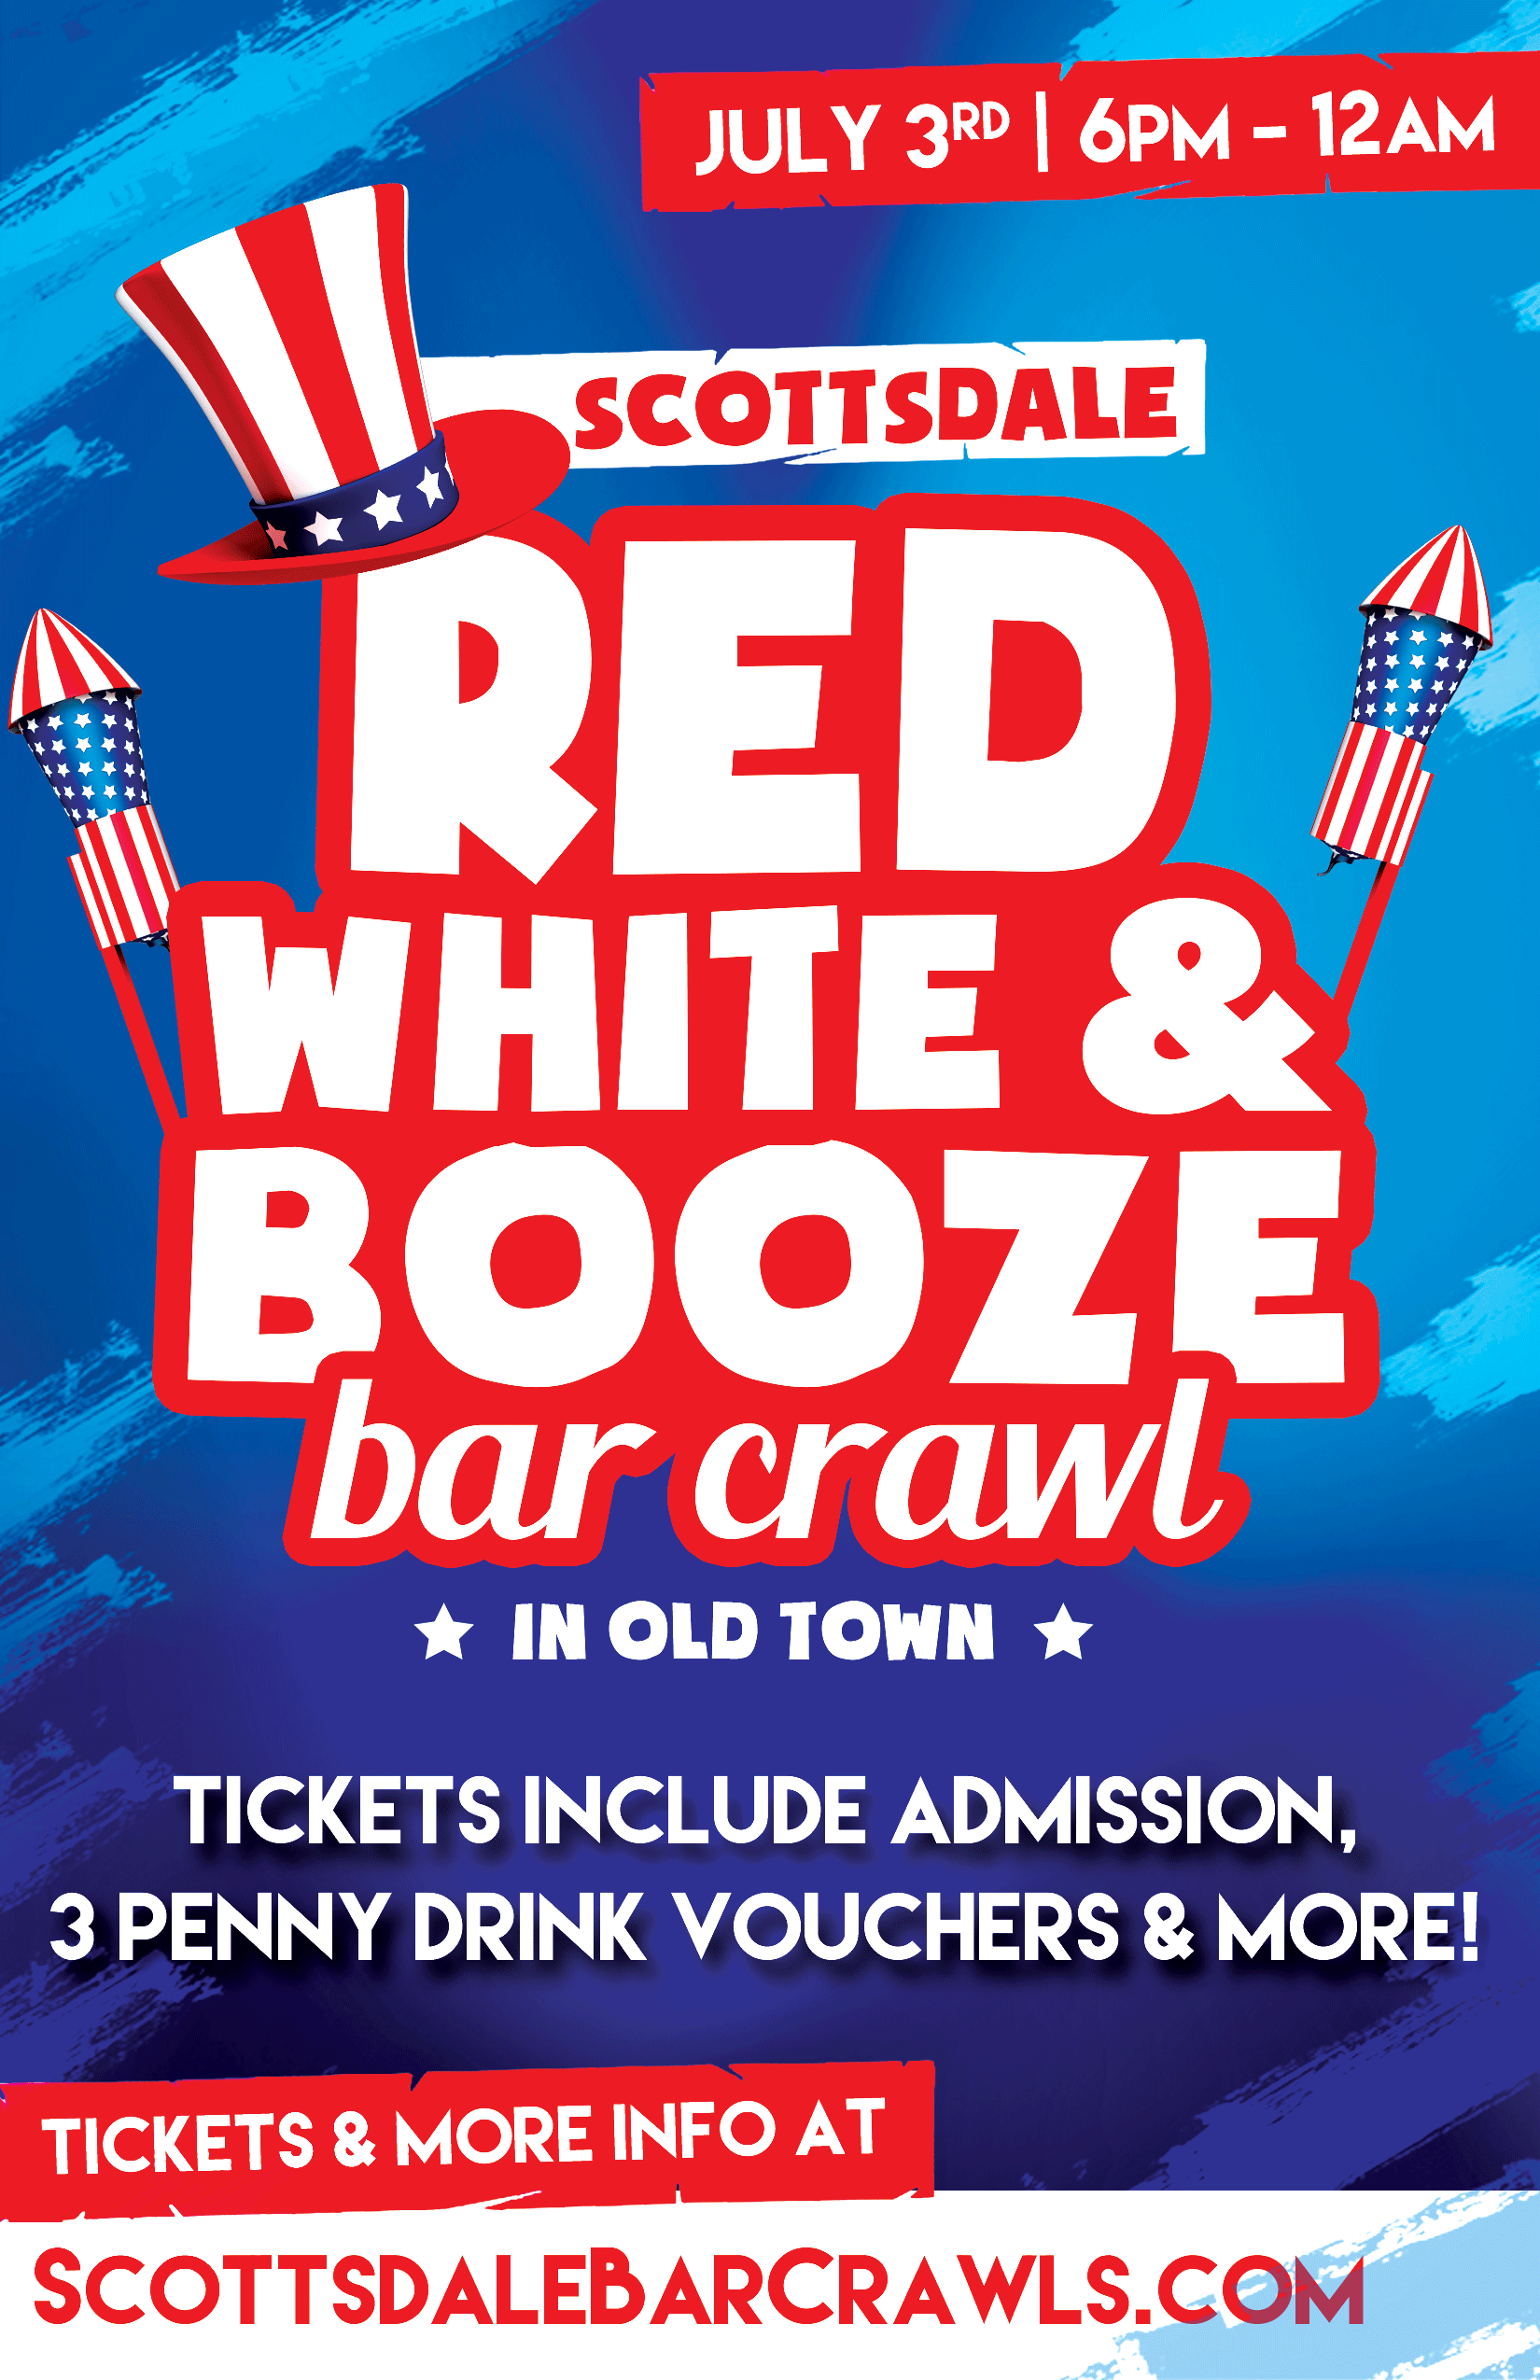 Red, White and Booze Bar Crawl Party - Tickets Include Admission To All Bars, 3 Penny Drink Vouchers & more!